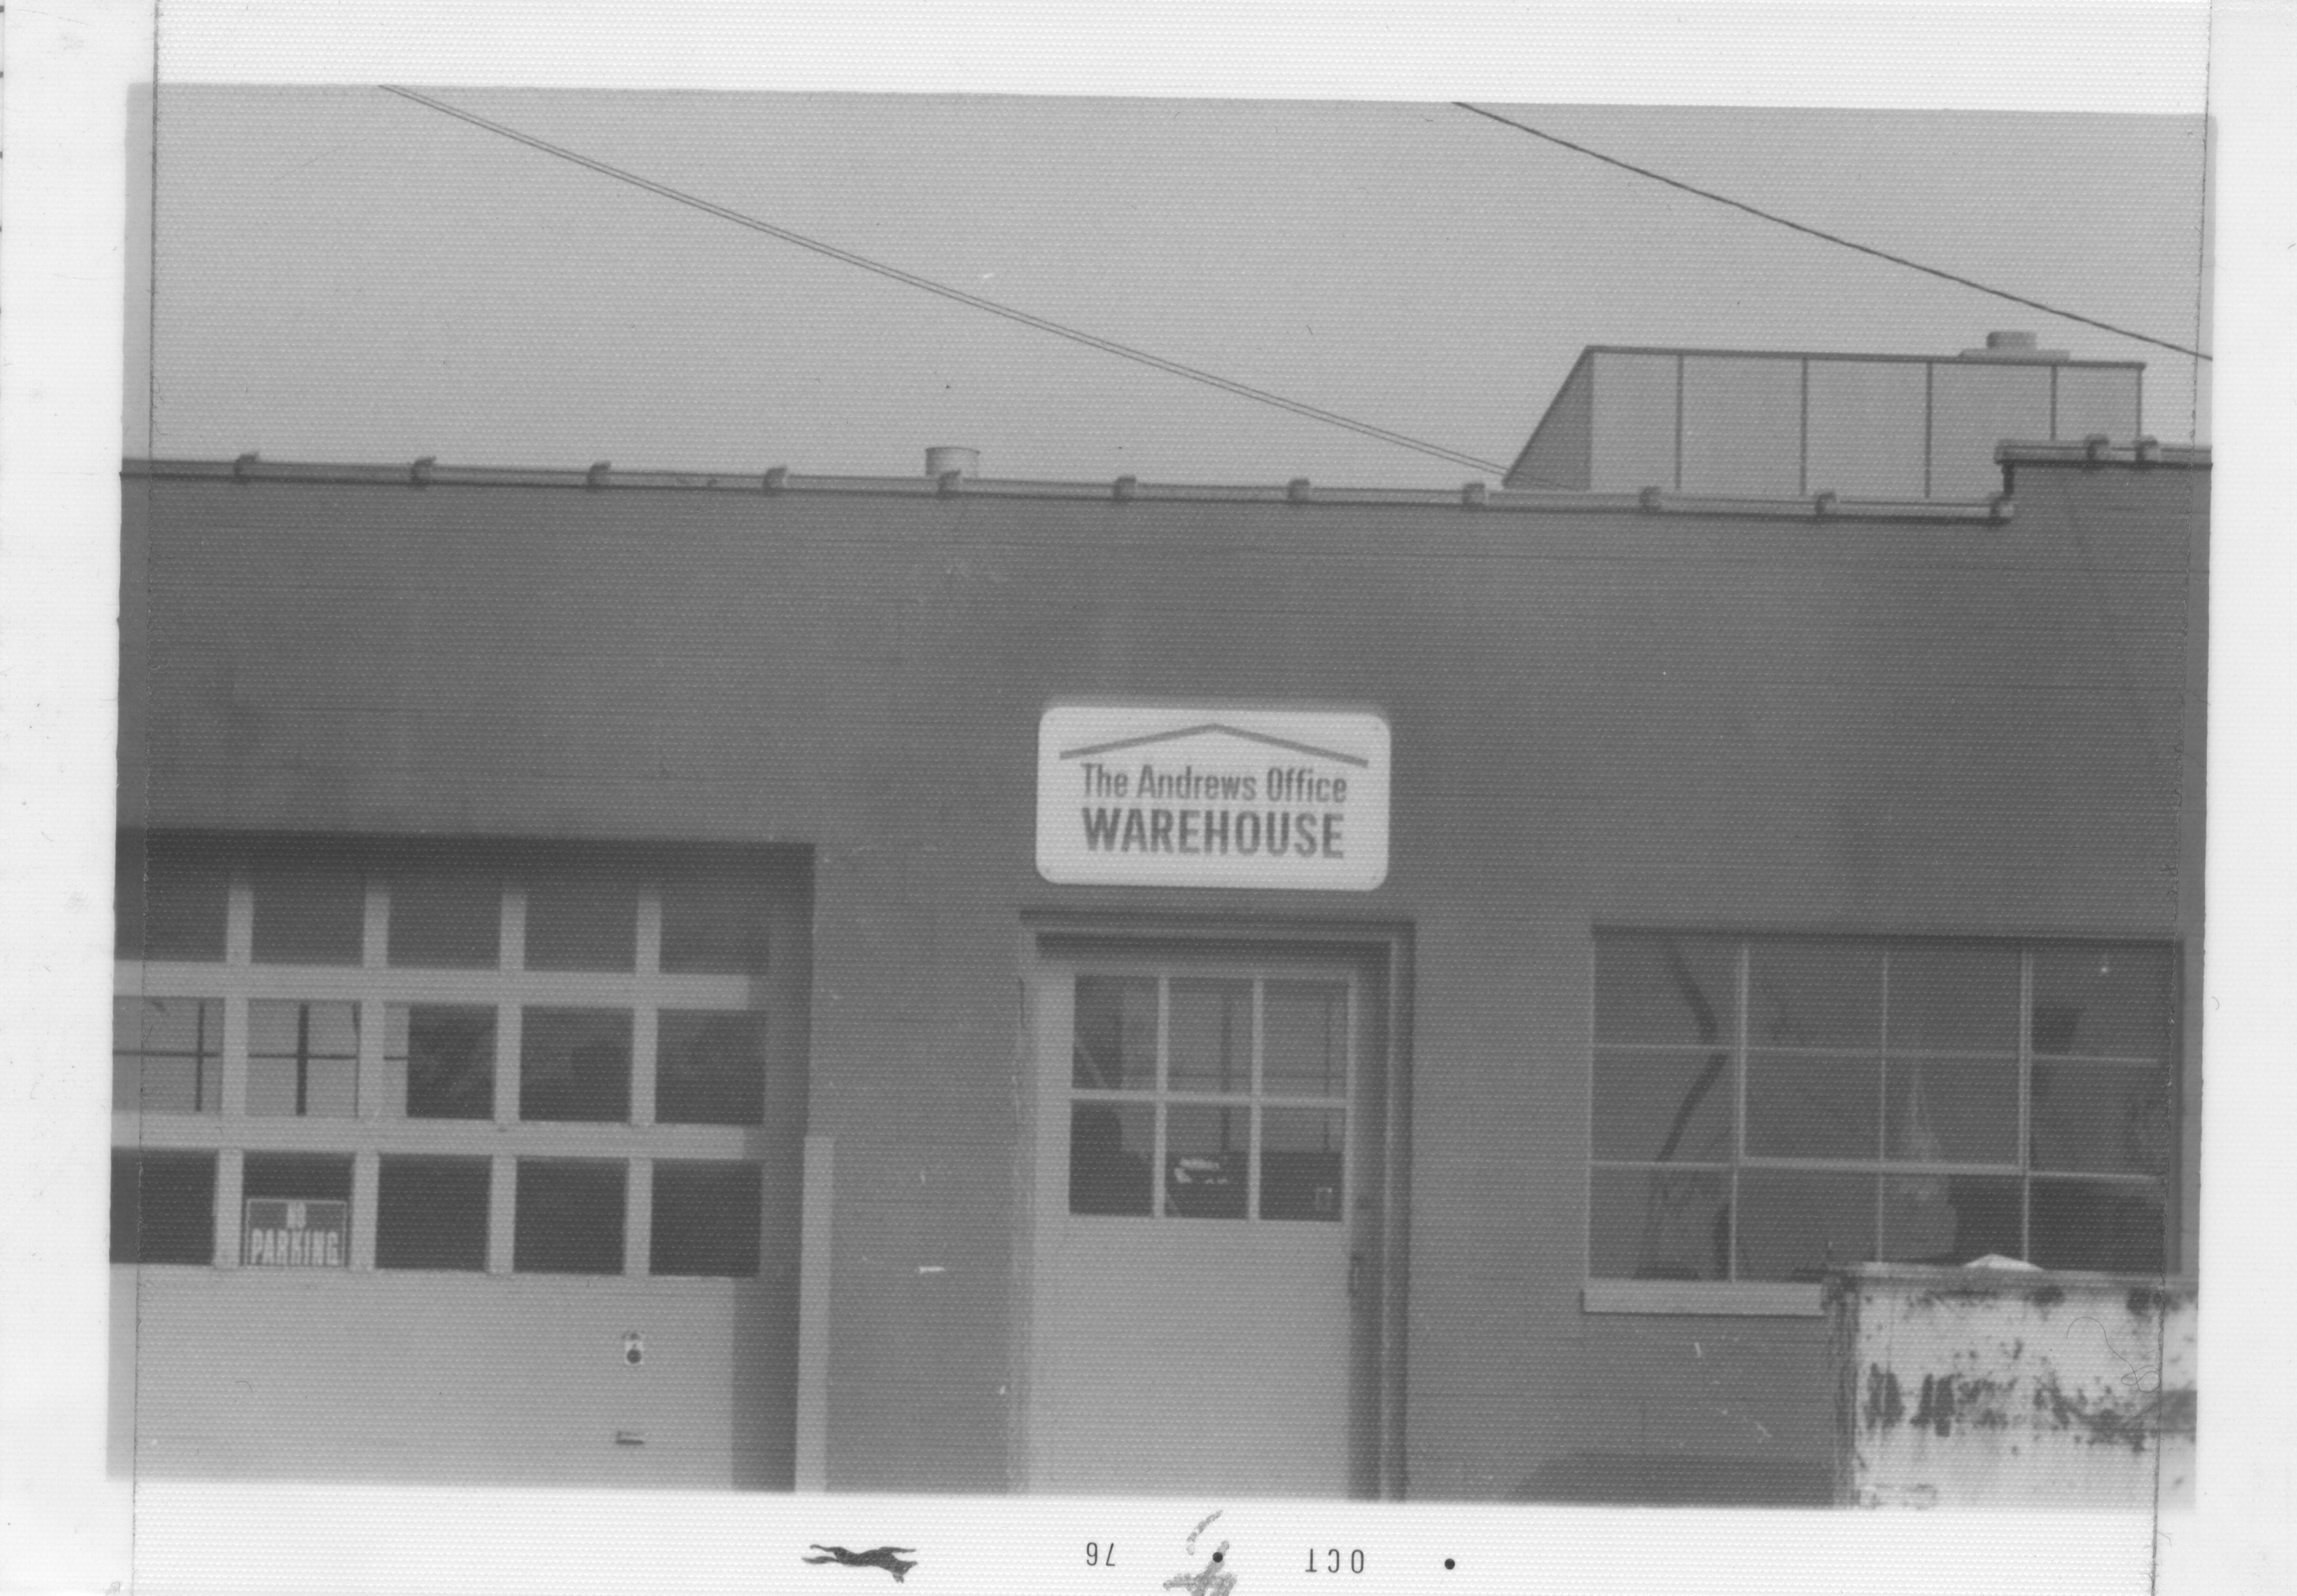 The Andrews Office Warehouse, 1976 image